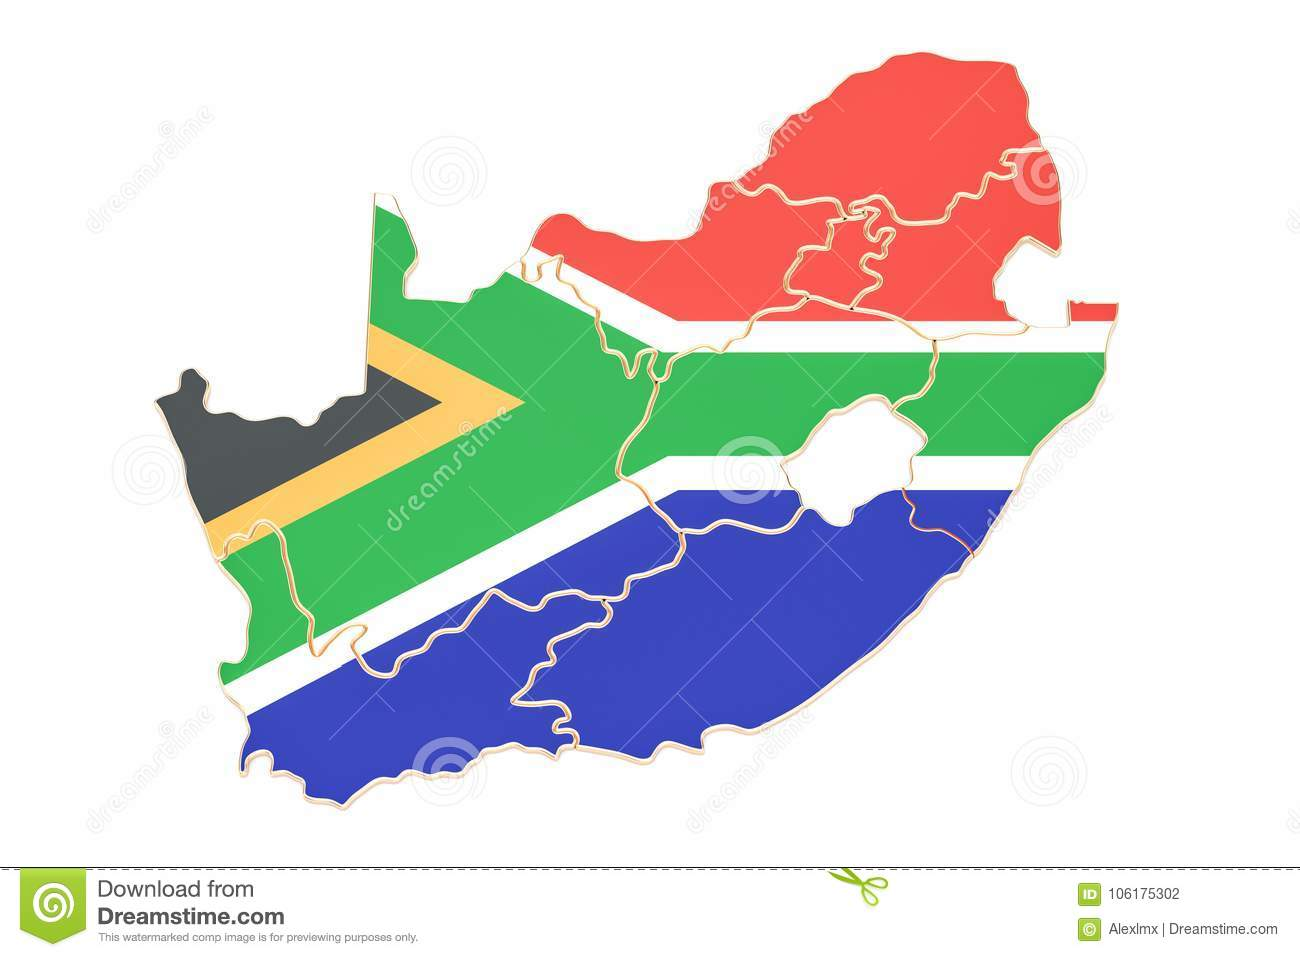 Map of south africa 3d rendering stock illustration illustration map of south africa 3d rendering ccuart Choice Image